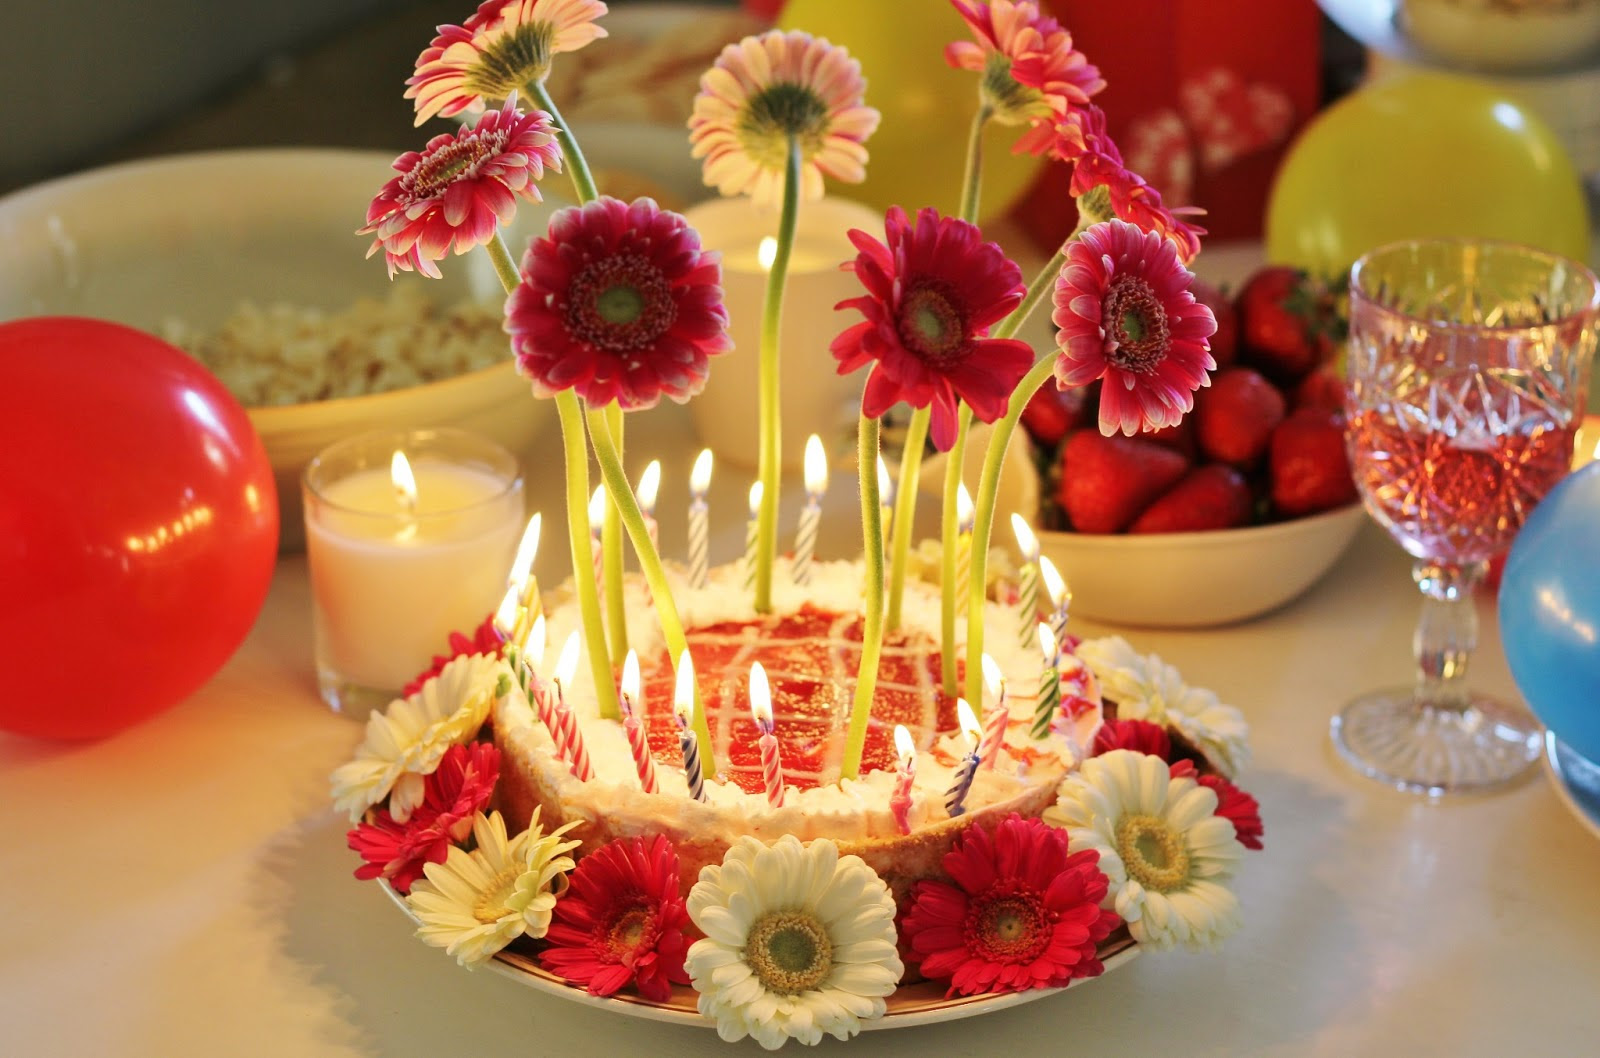 Birthday Wishes Images With Flowers And Cake Healthy